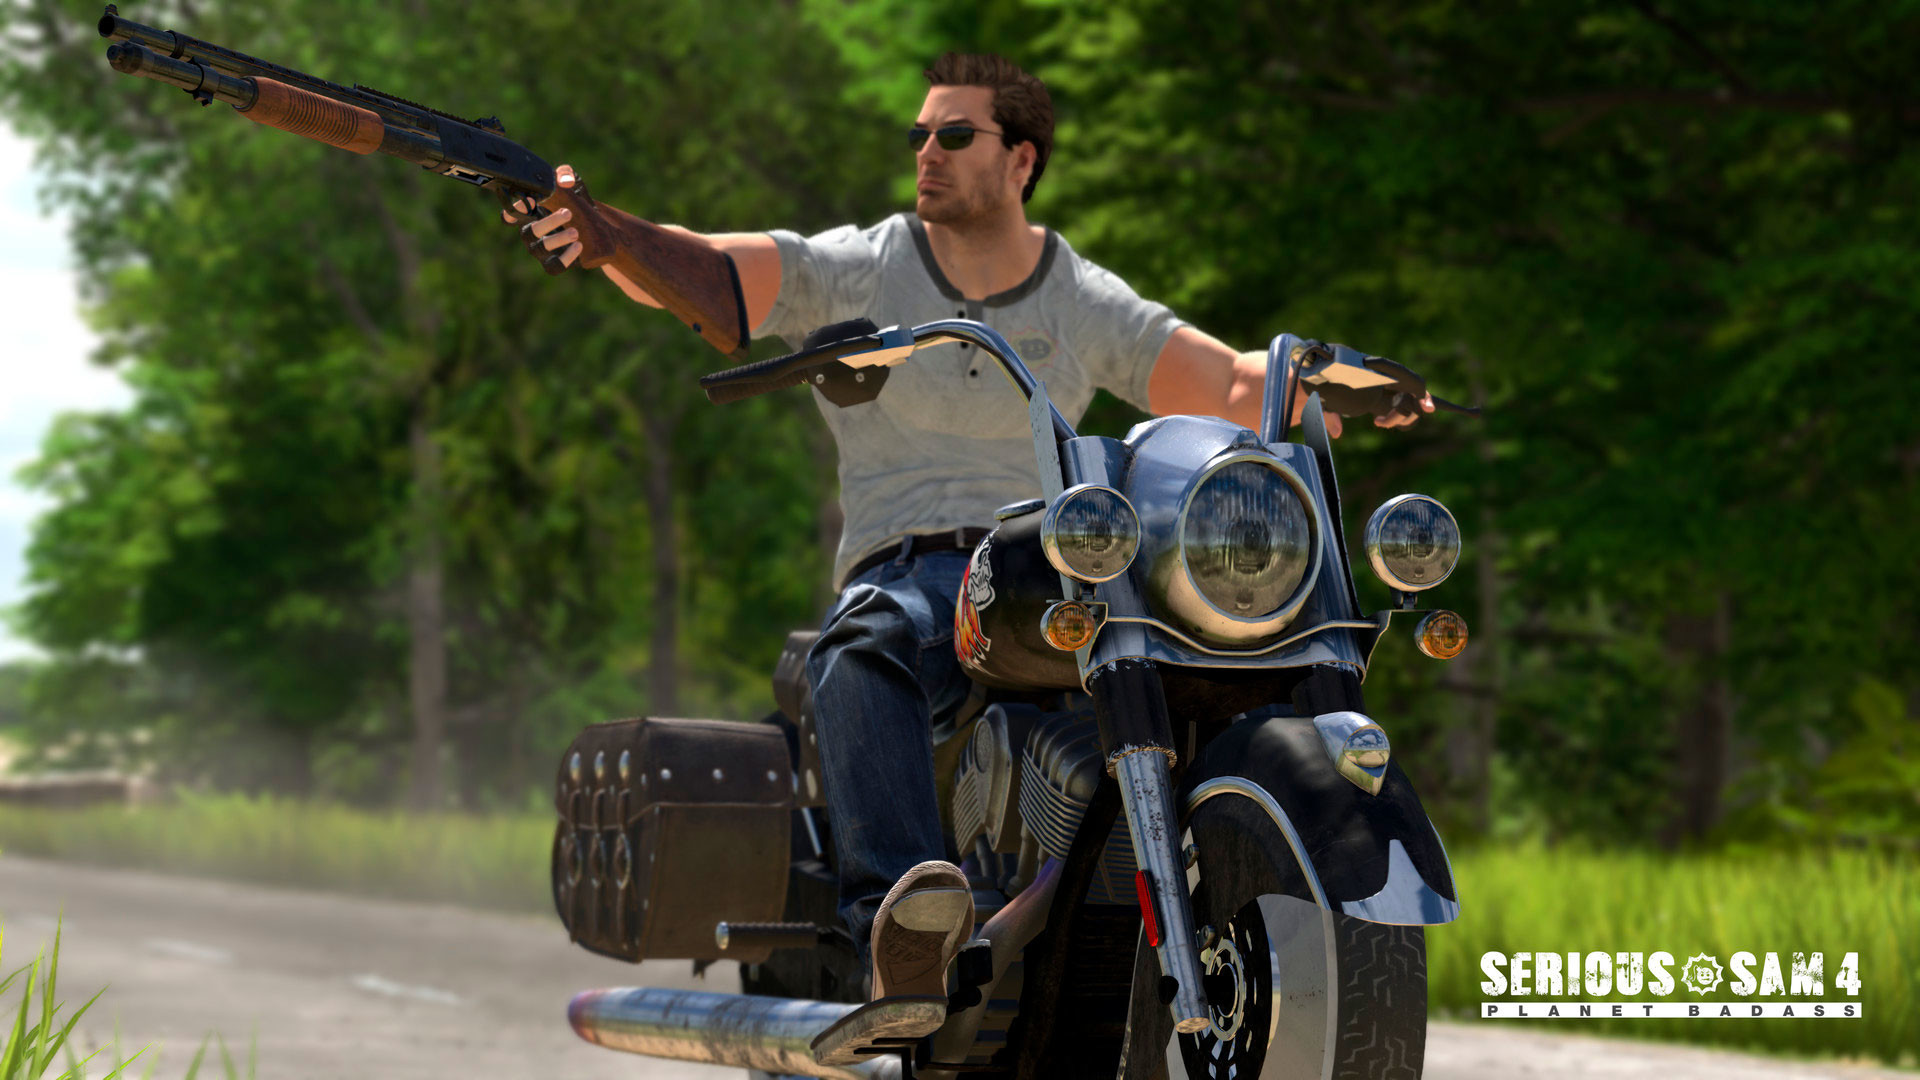 Nuevo teaser trailer de Serious Sam 4: Planet Badass